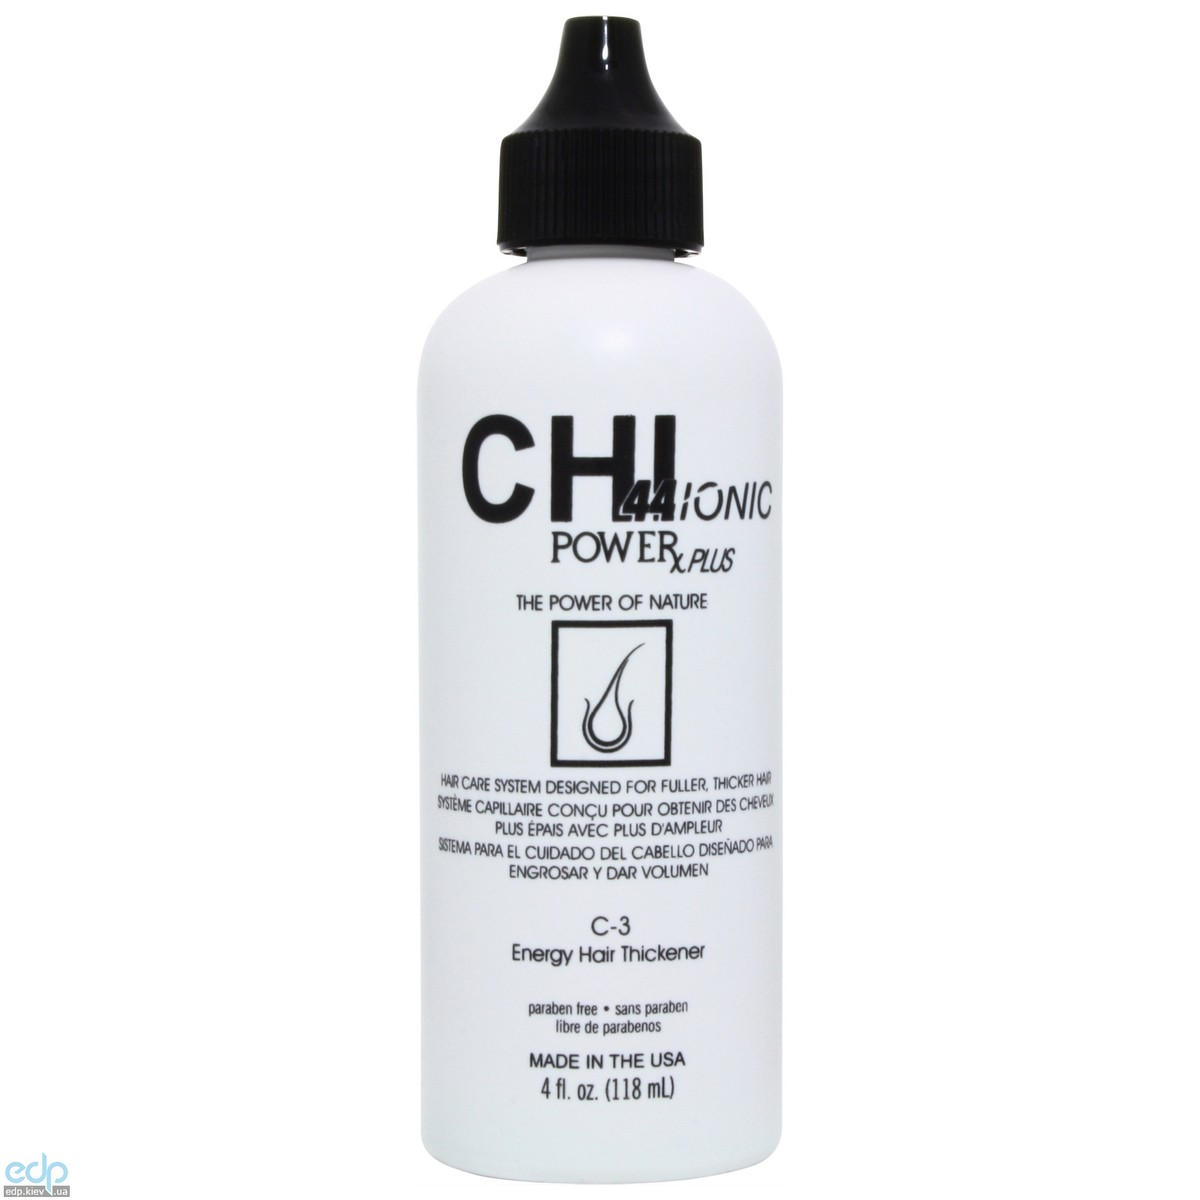 CHI 44 Ionic Power Plus Energy Thickener C-3 - Лосьон для кожи головы C-3 - 120 ml (арт. CHI5525)